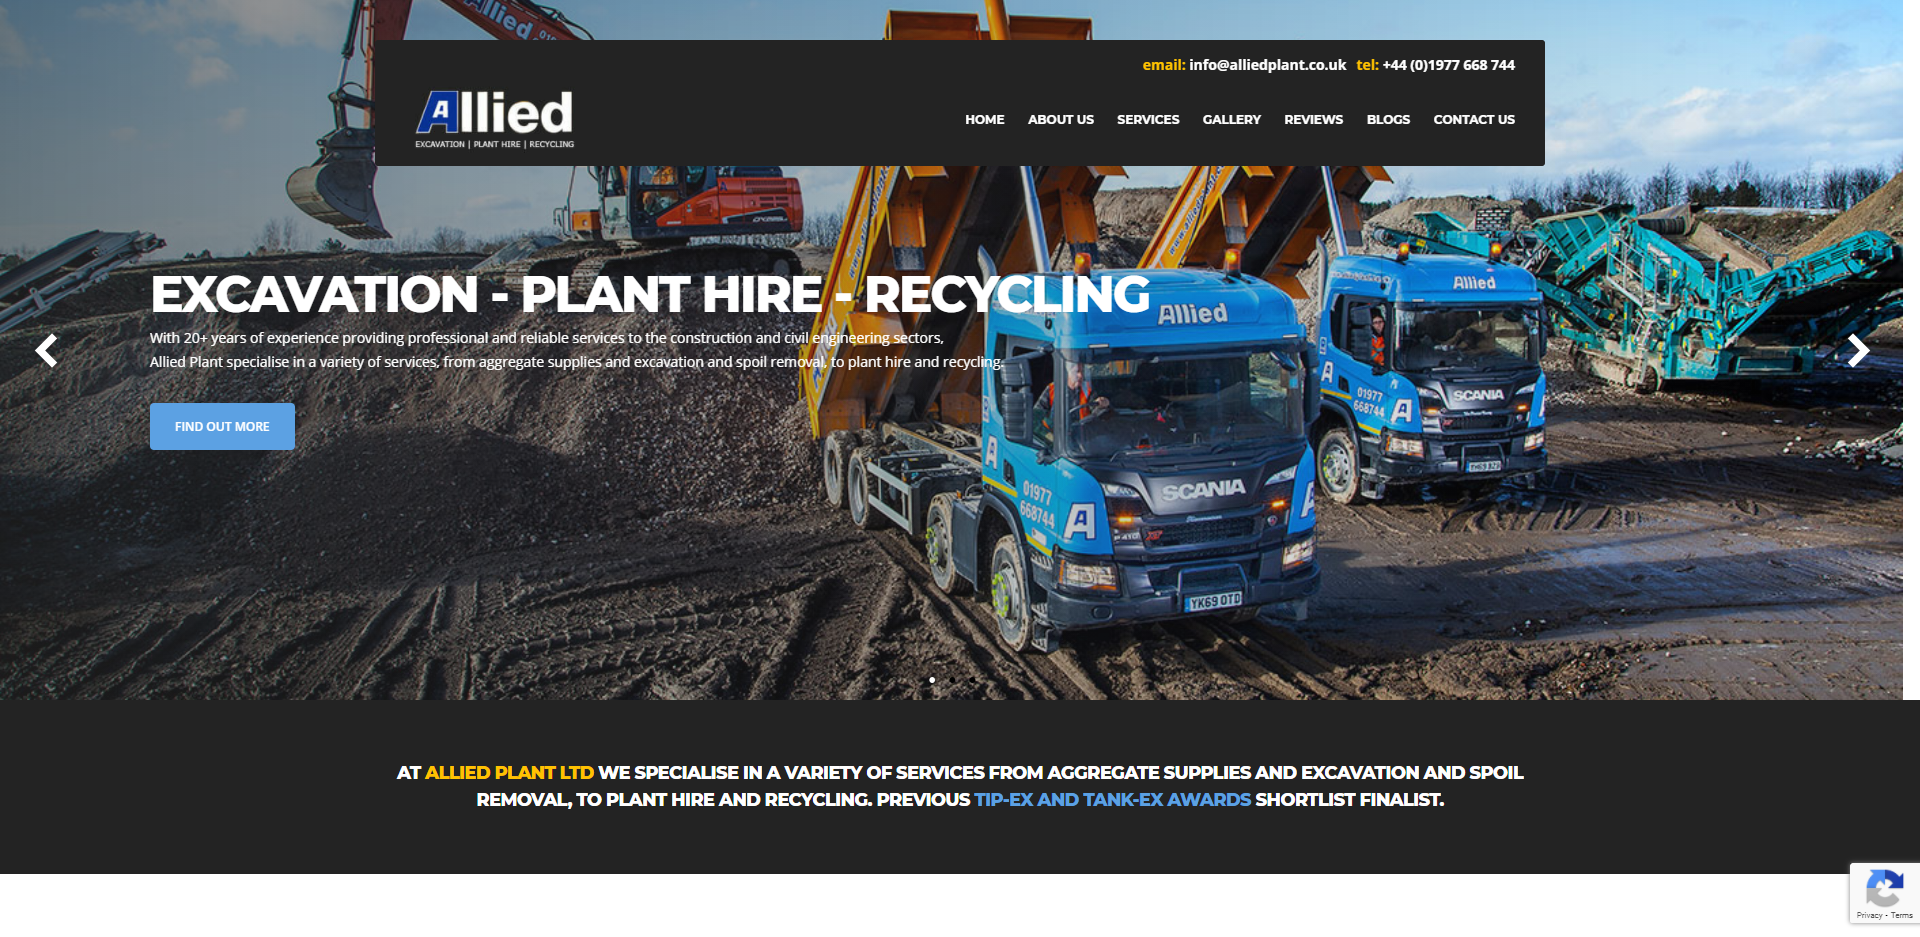 Allied Plant homepage banner